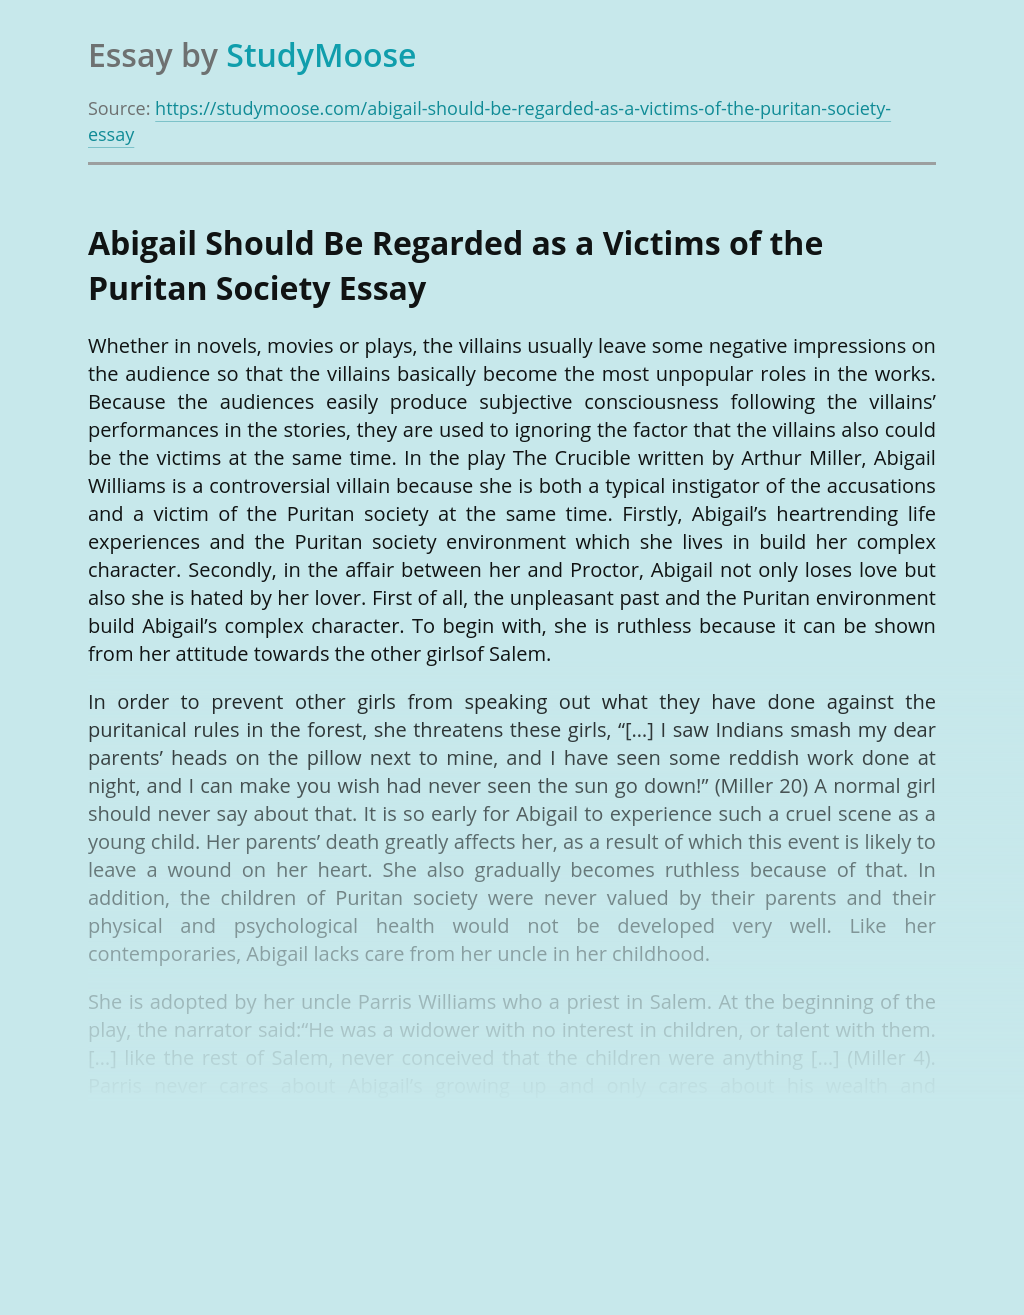 Abigail Should Be Regarded as a Victims of the Puritan Society